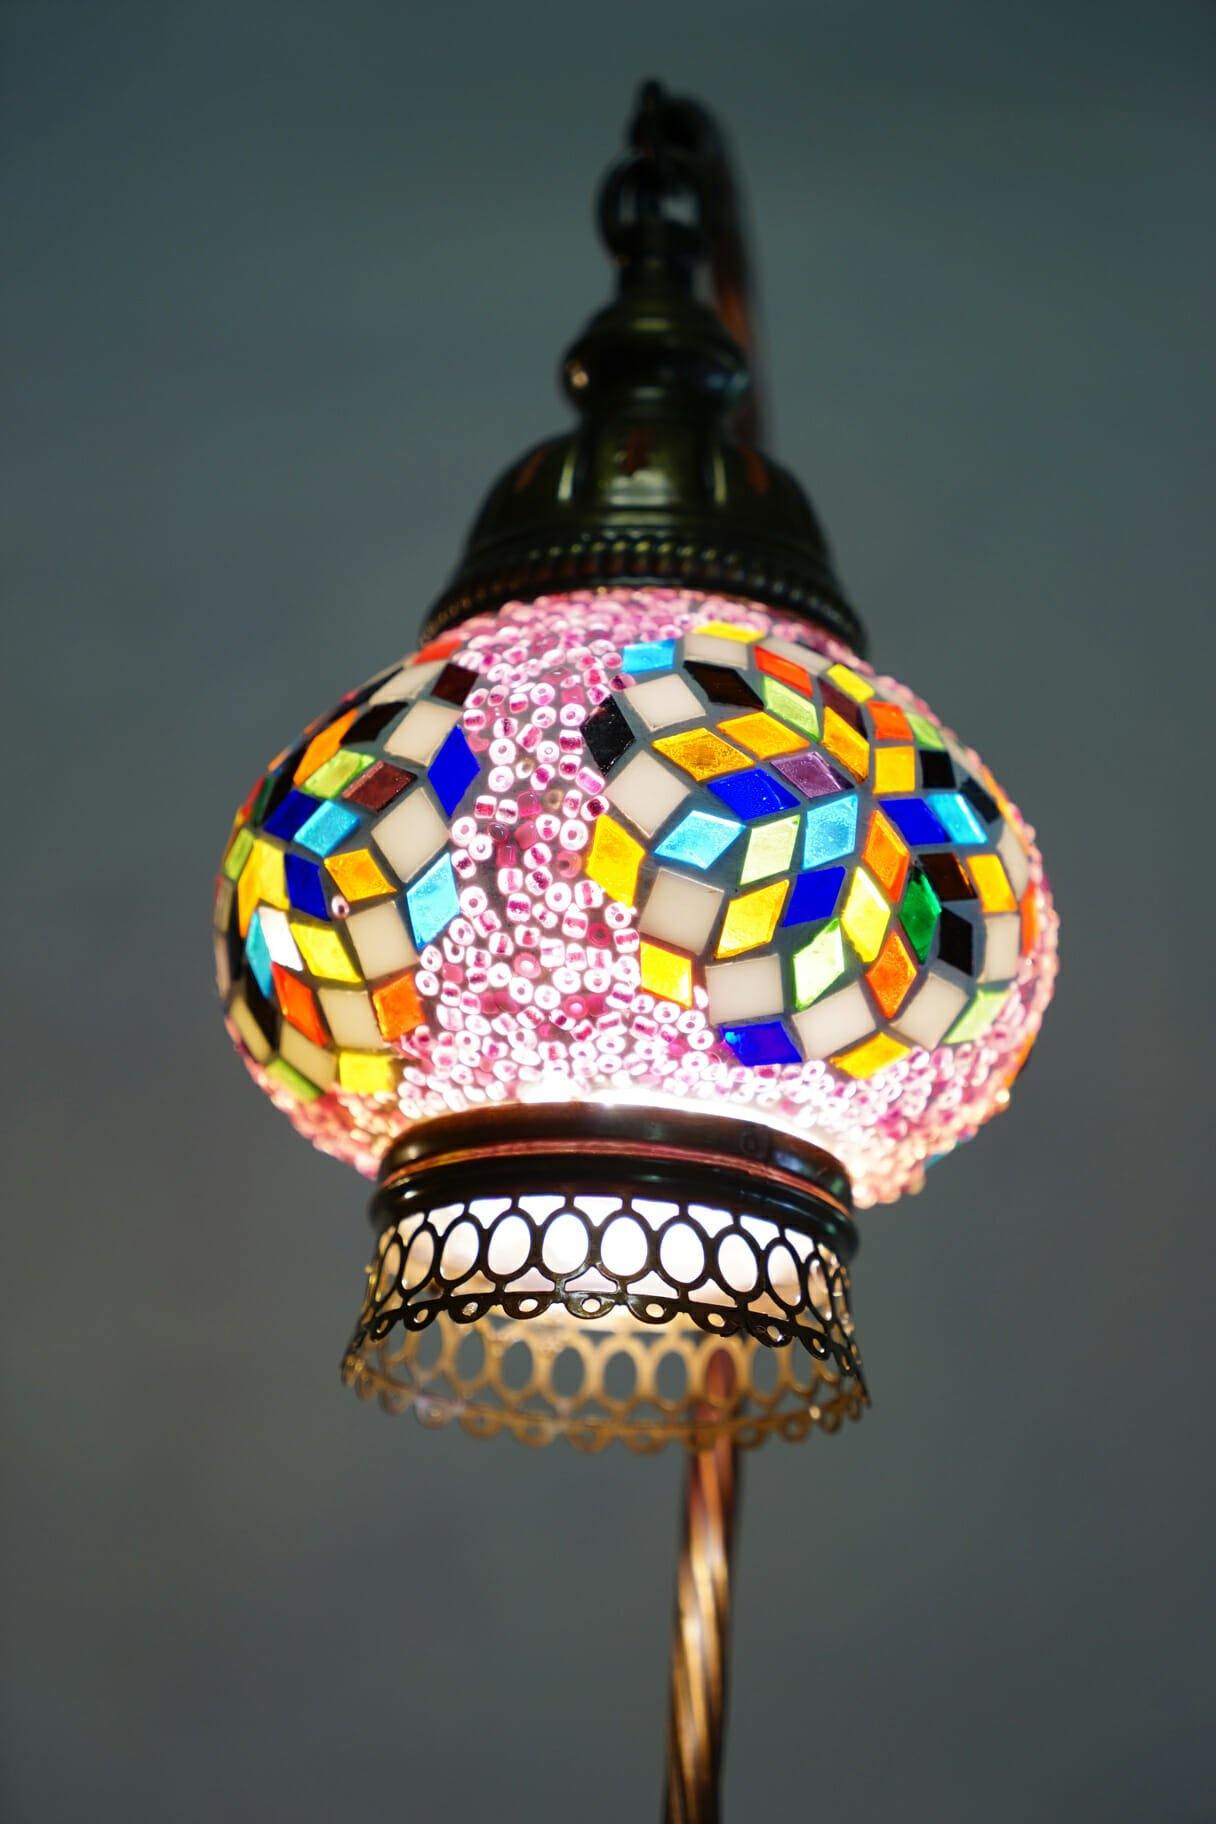 Pixie dust mosaic table lamp the dancing pixie turkish mosaic table lamp pixie dust aloadofball Choice Image